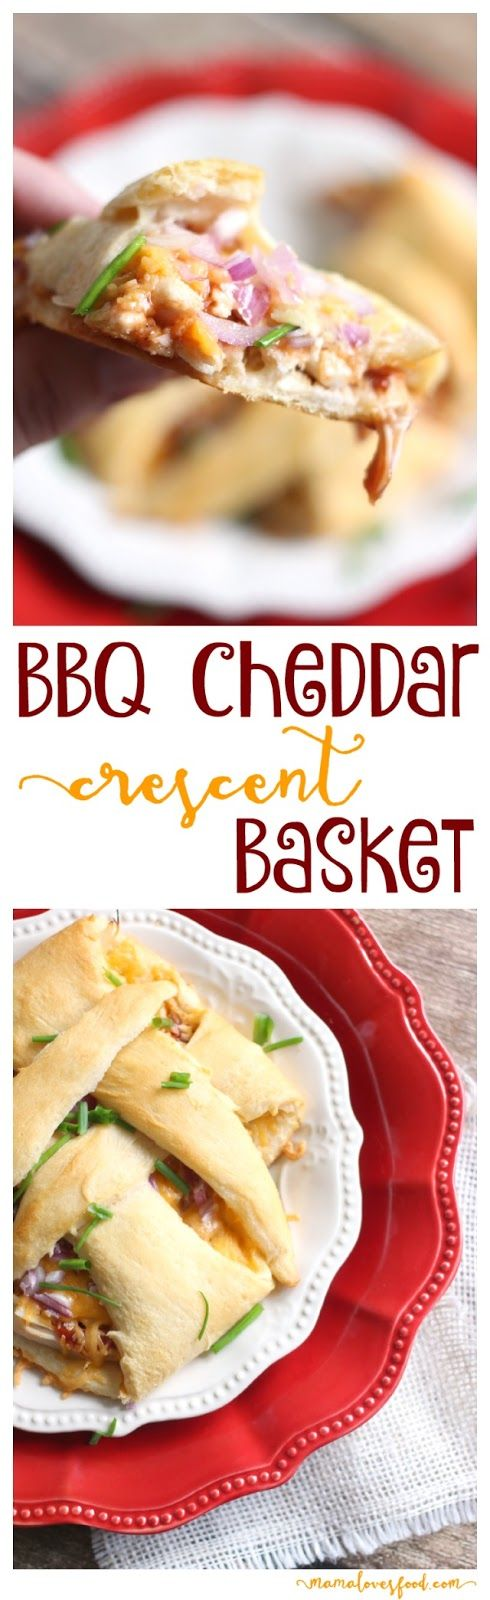 Barbecue Cheddar Crescent Baskets.  These are easy to make and great for a hungry dude or dudette :-D #NaturallyCheesy #ad